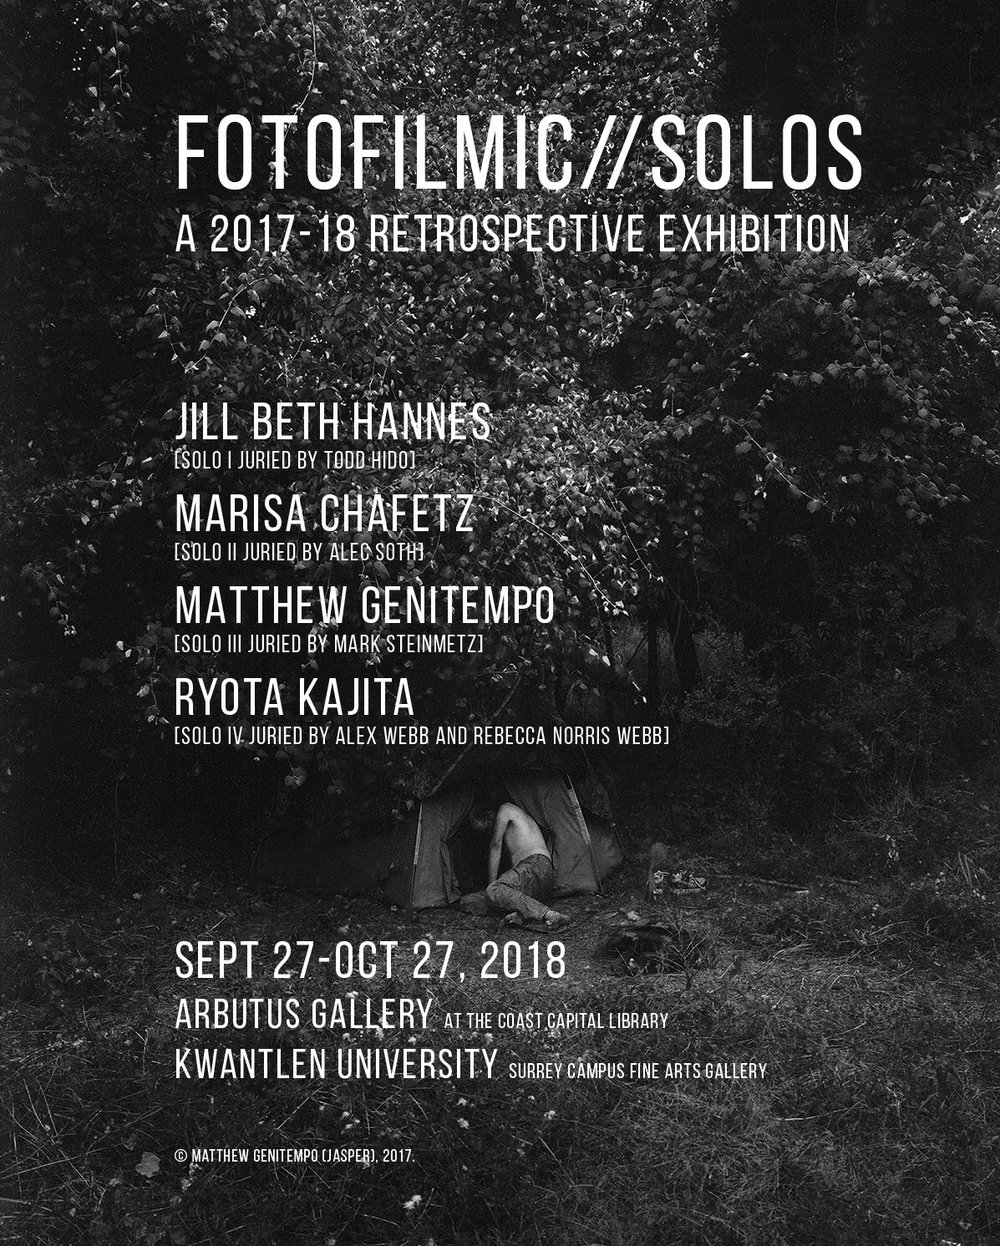 FotoFilmic_SOLOS_Web_Poster.JPG